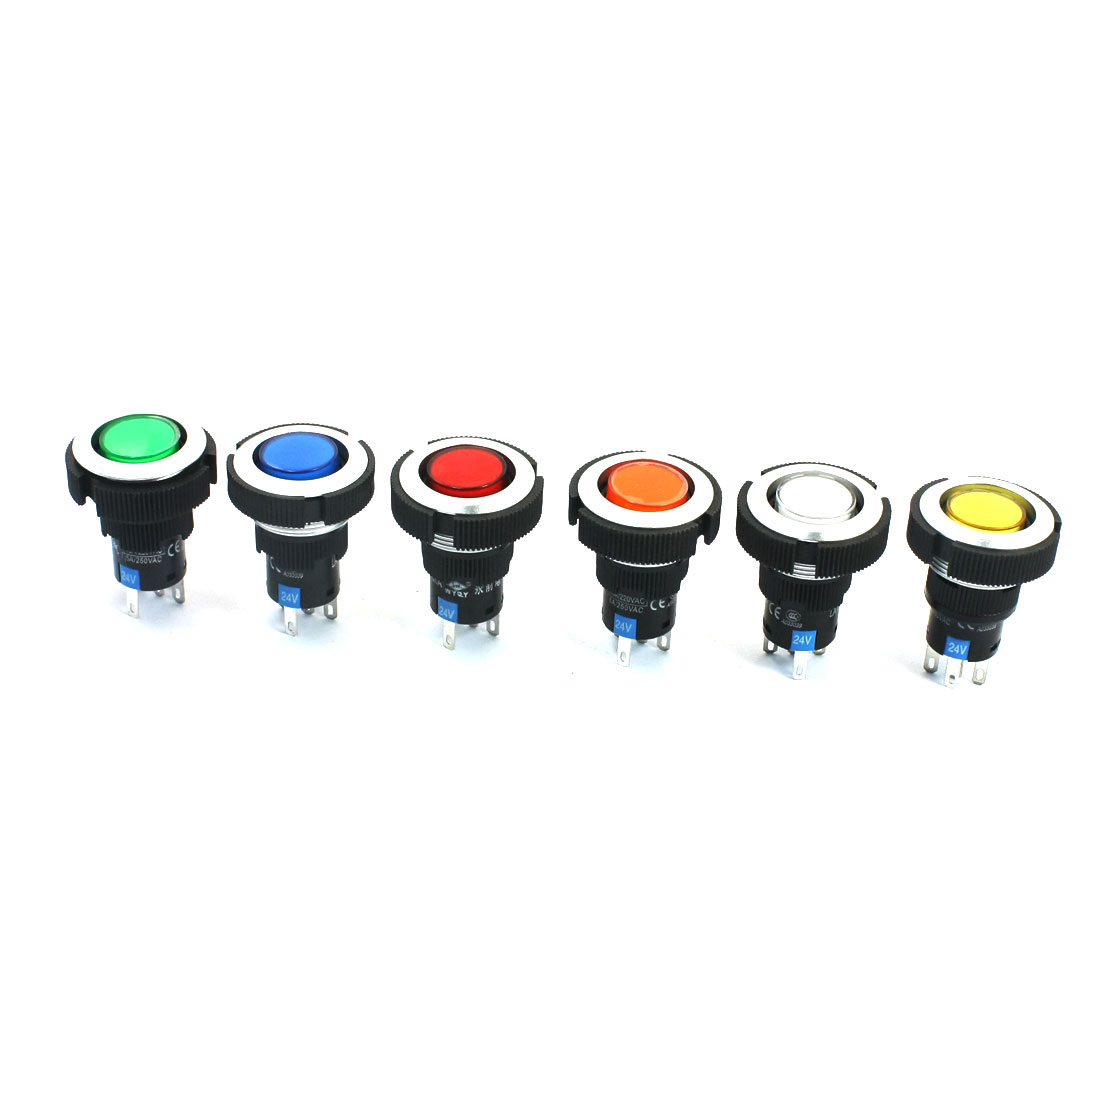 6Pcs 24V 22mm Thread Panel Mounting SPDT 1NO 1NC 5Pin Locking 6-Color Light Push Button Switch